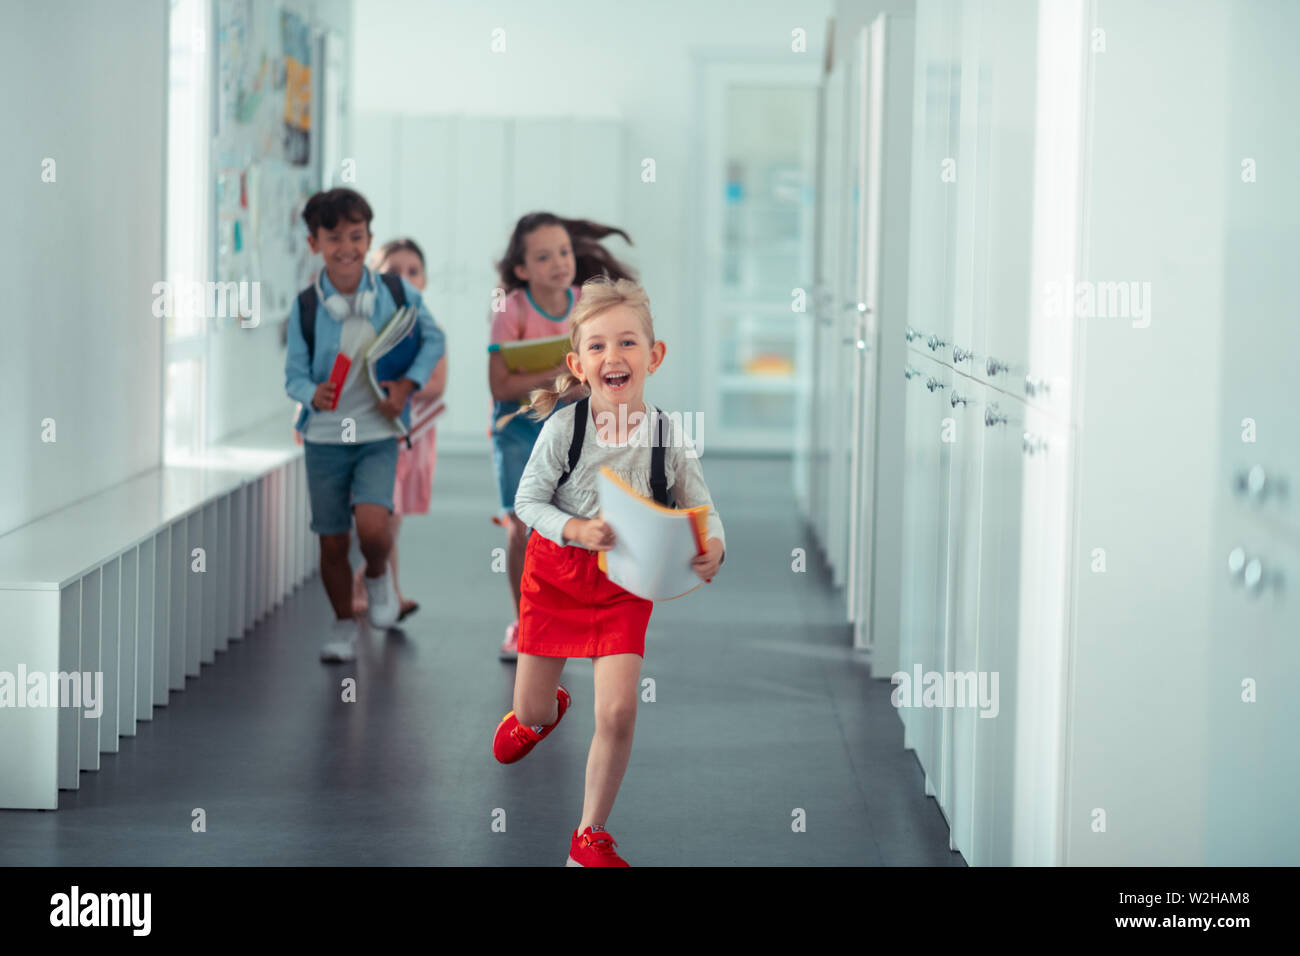 Happy girl wearing red skirt running home from school - Stock Image